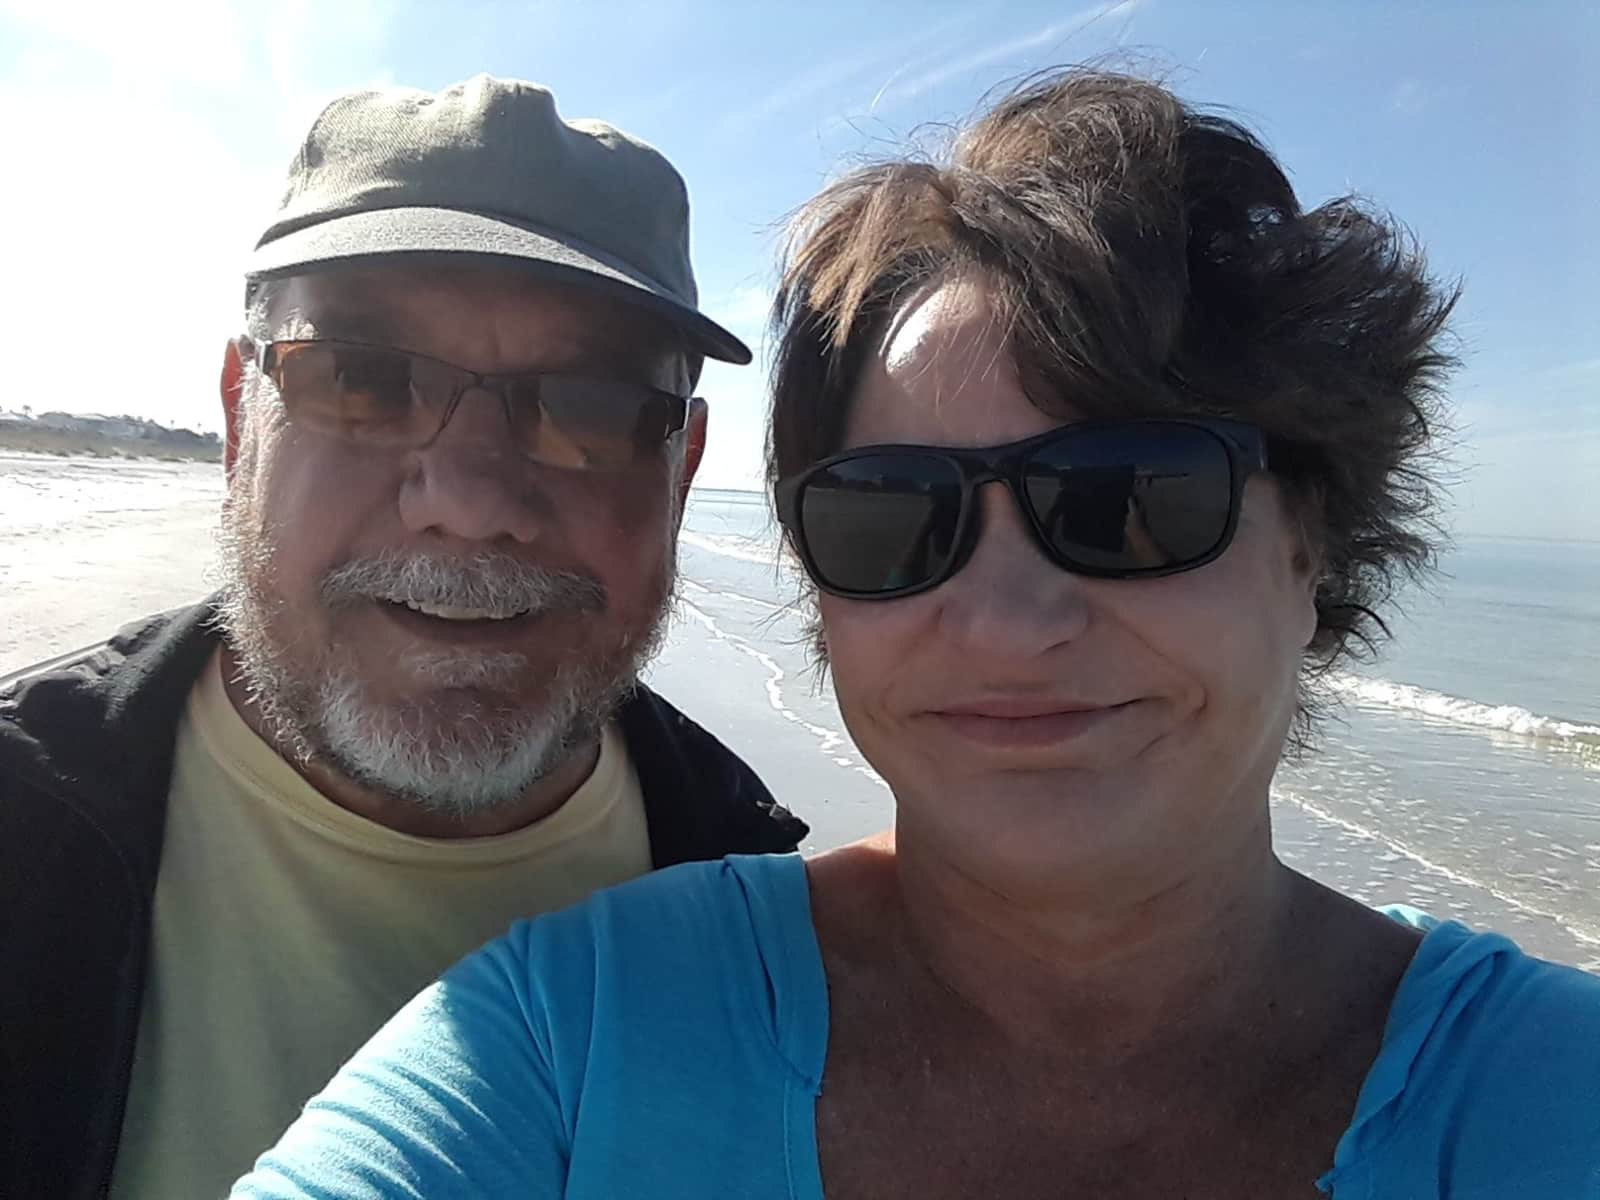 Diana & Geoff from Stratford, Ontario, Canada